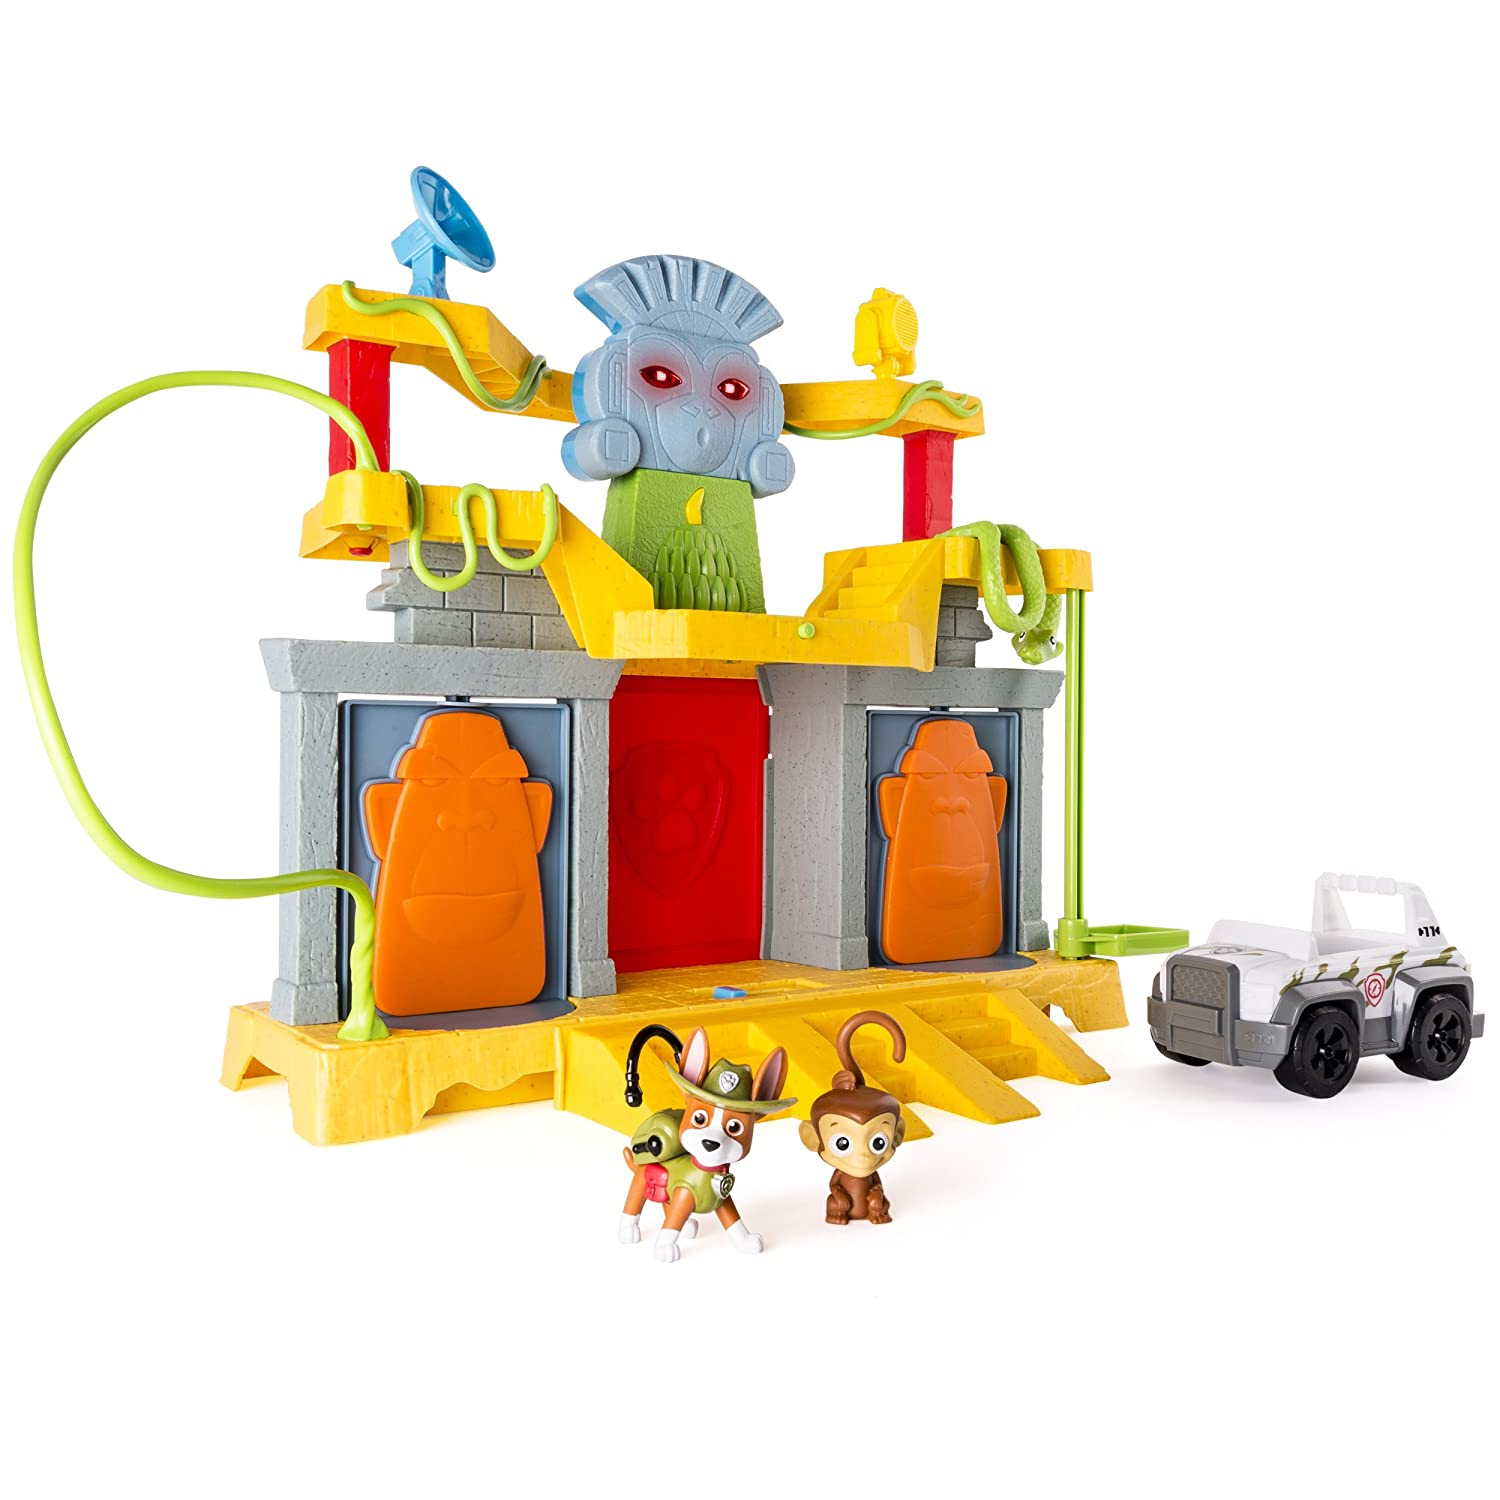 Monkey Temple Playset